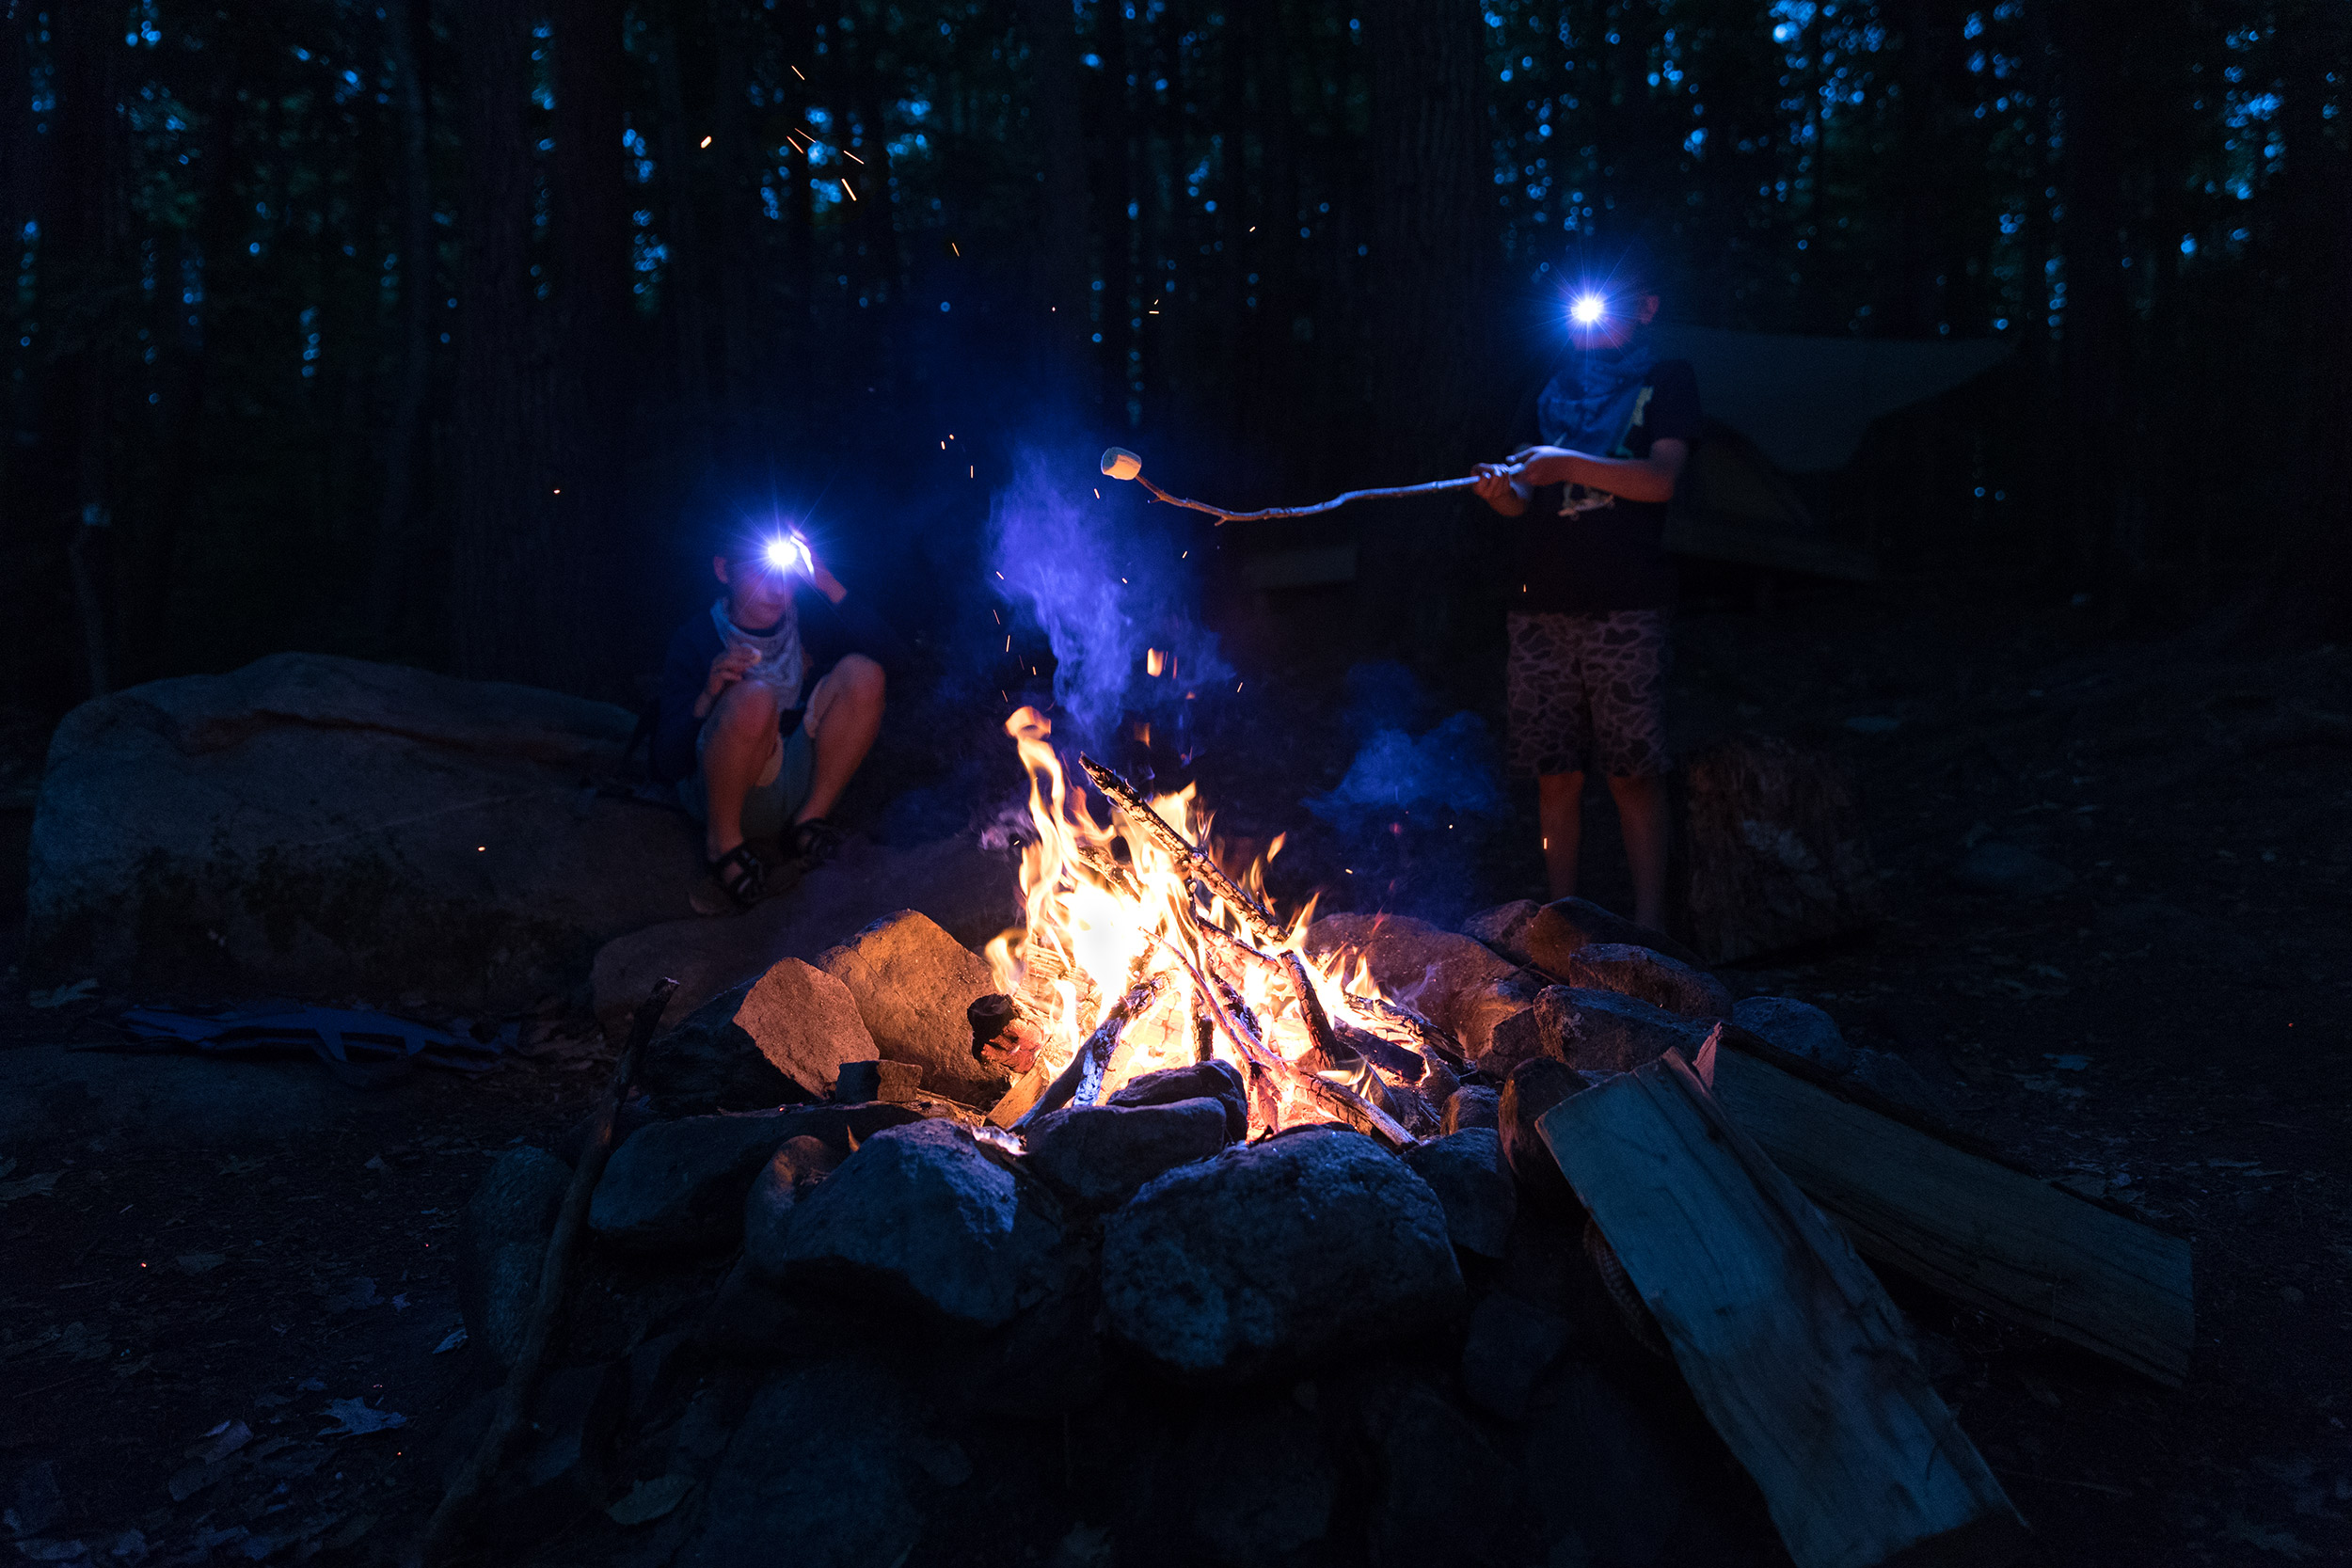 CAMPING WITH KIDS | FAMILY | CHILDHOOD | Campfire | Opt Outside | Nature | Explore | 28